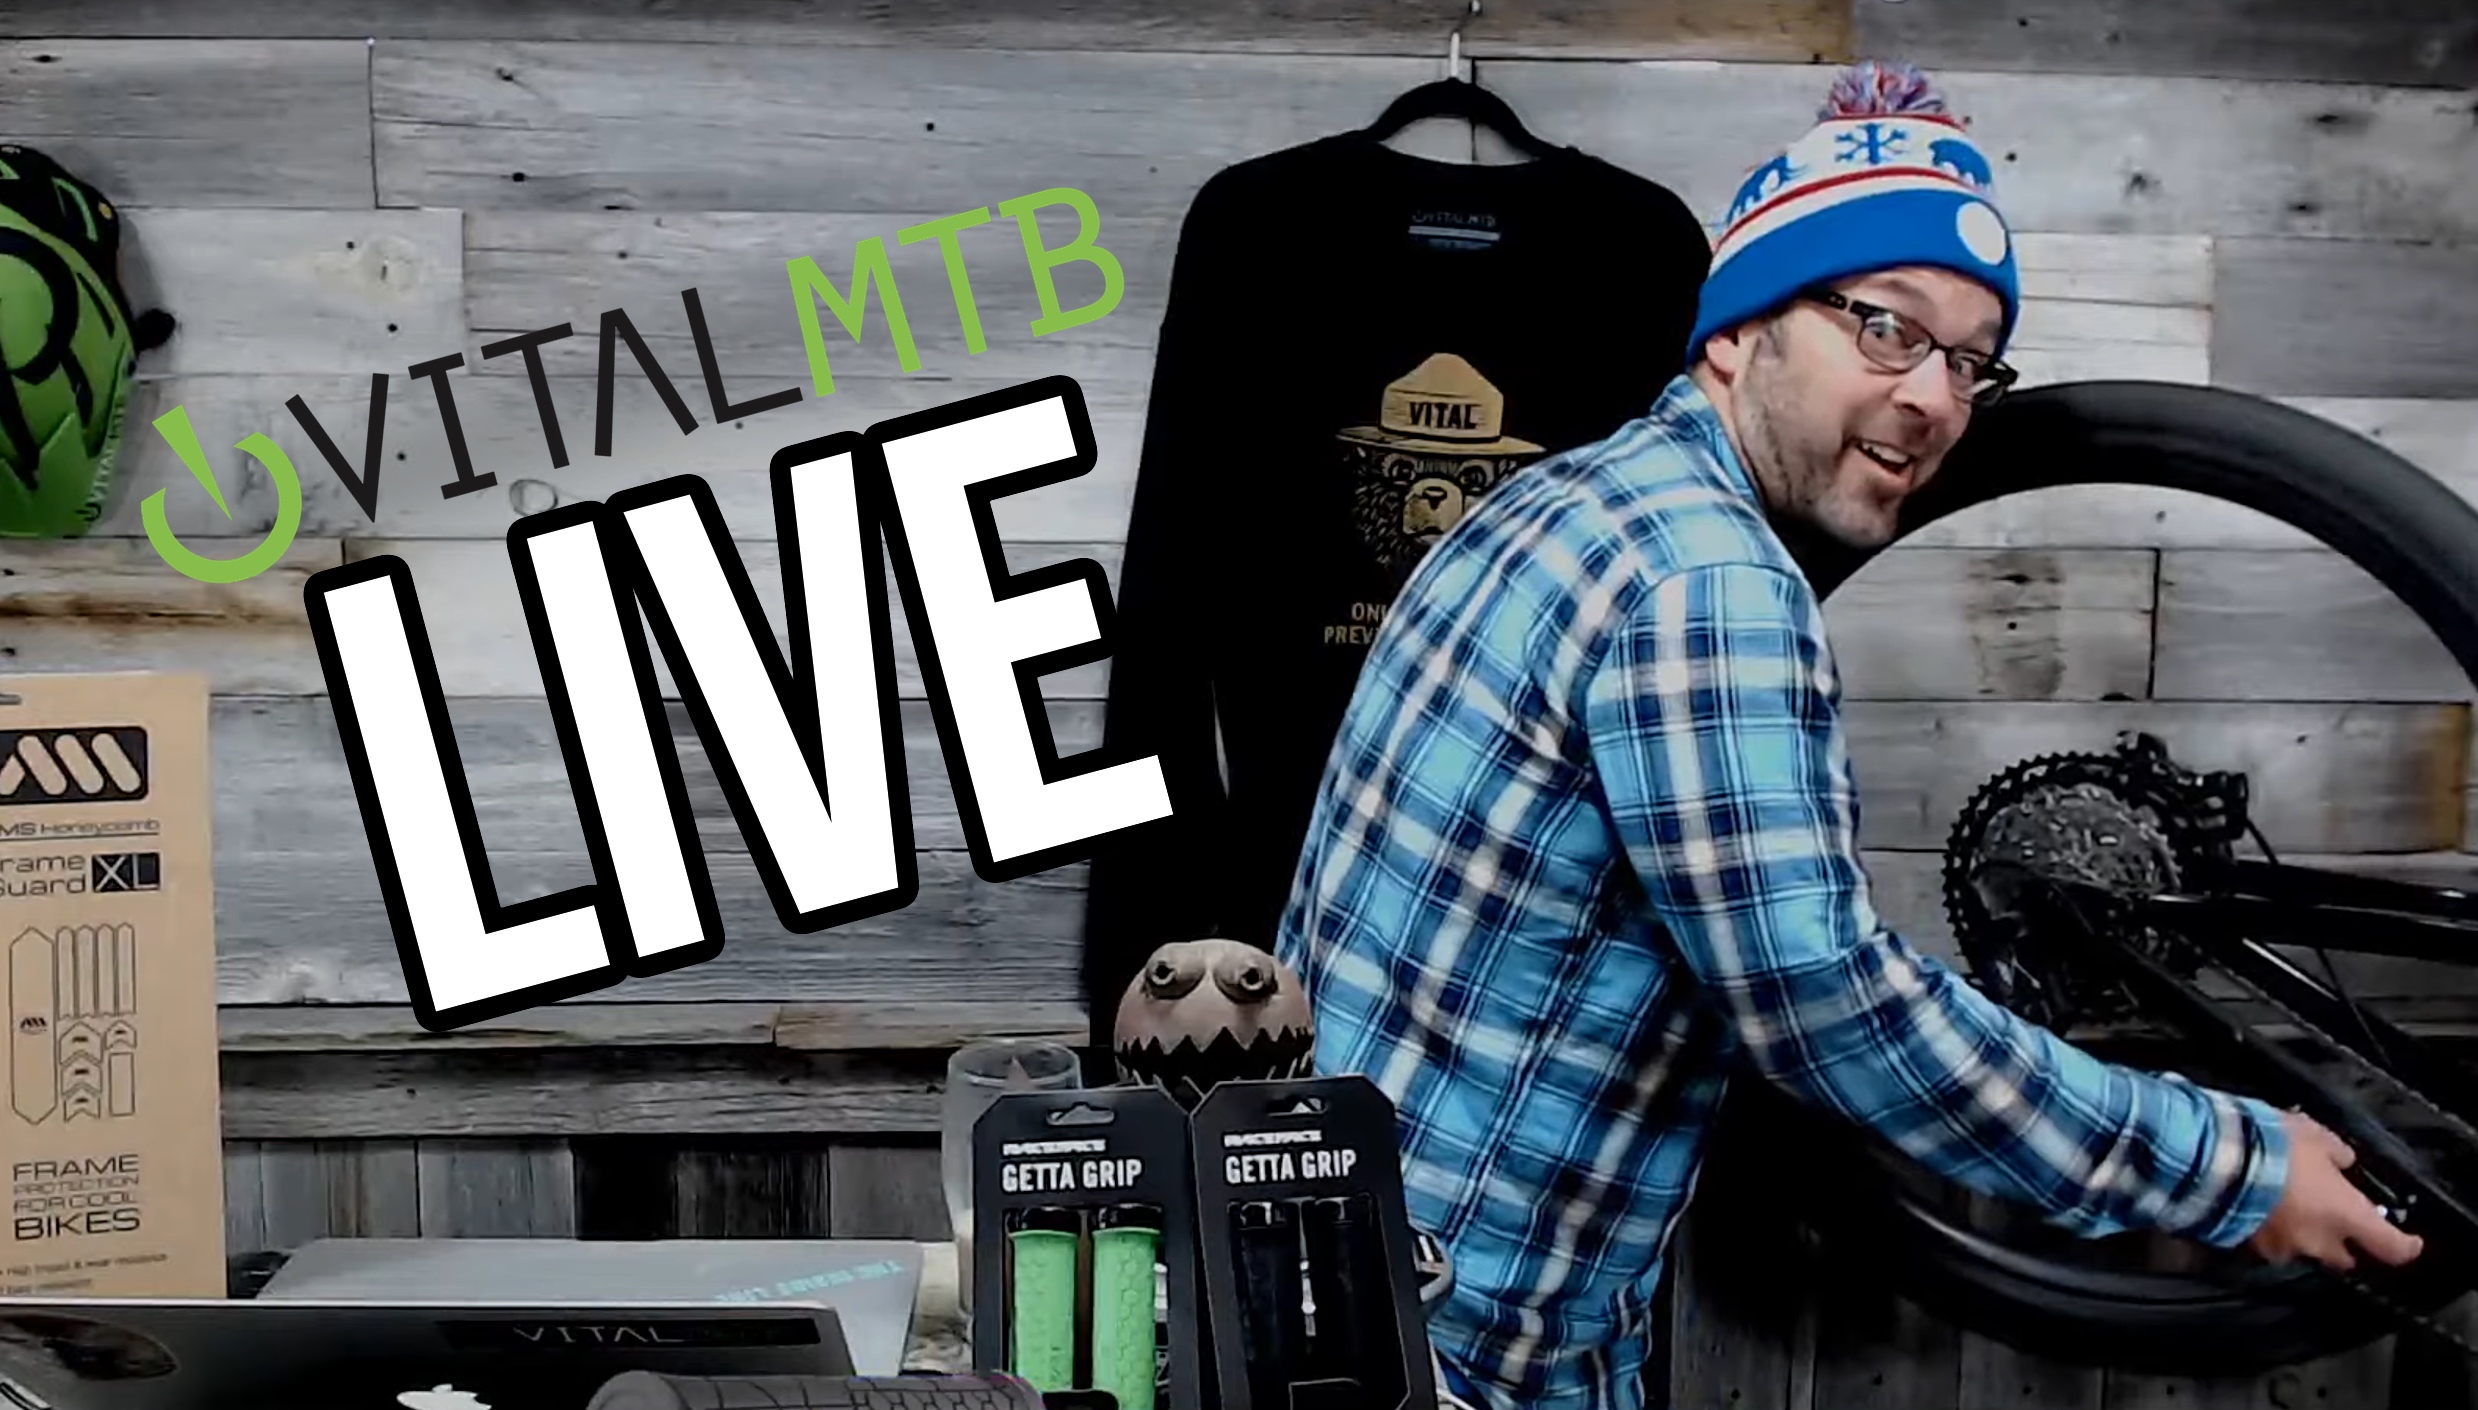 VITAL MTB LIVE - April 3 - The Best Manual and Wheelie Training Machines, Bikes, Tech, Gear